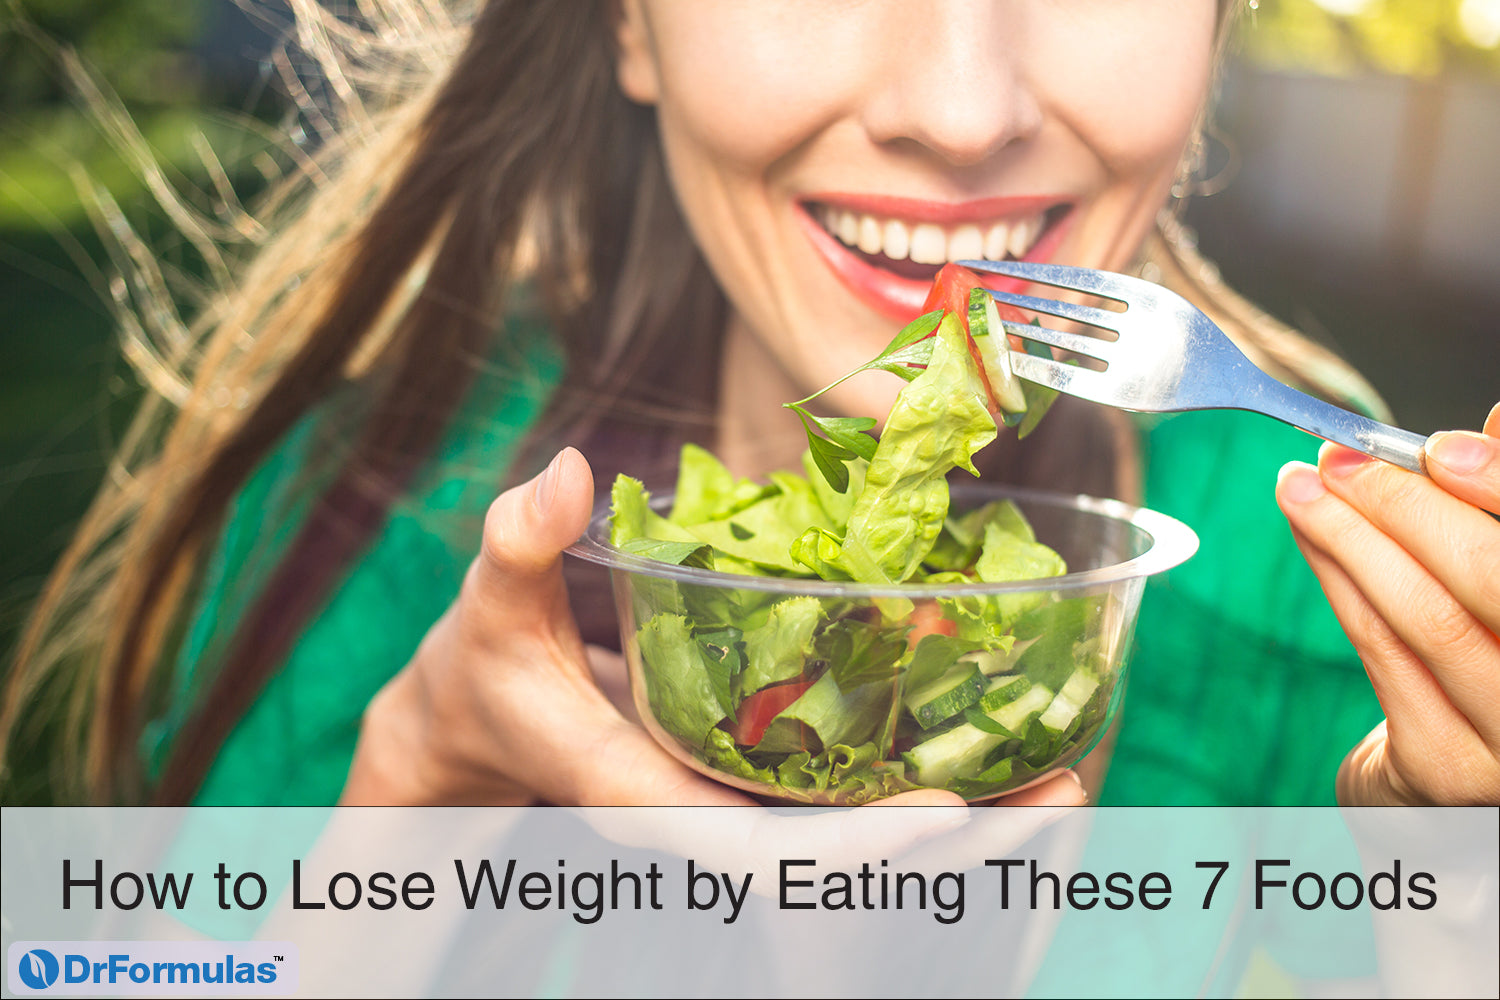 How to Lose Weight by Eating These 7 Foods